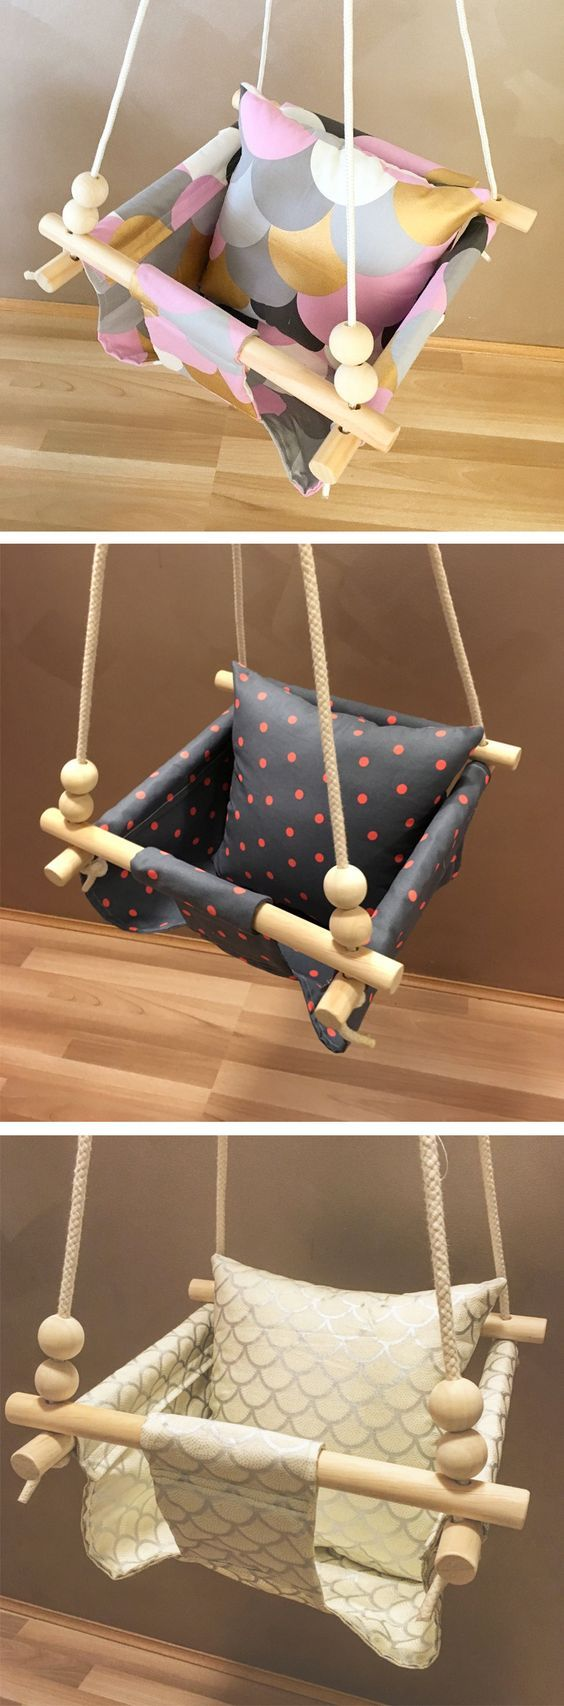 baby chair swing pink curtis dark brown leather recliner club 25+ best swings ideas on pinterest | burlap baby, diy gift for boy and handmade kids ...